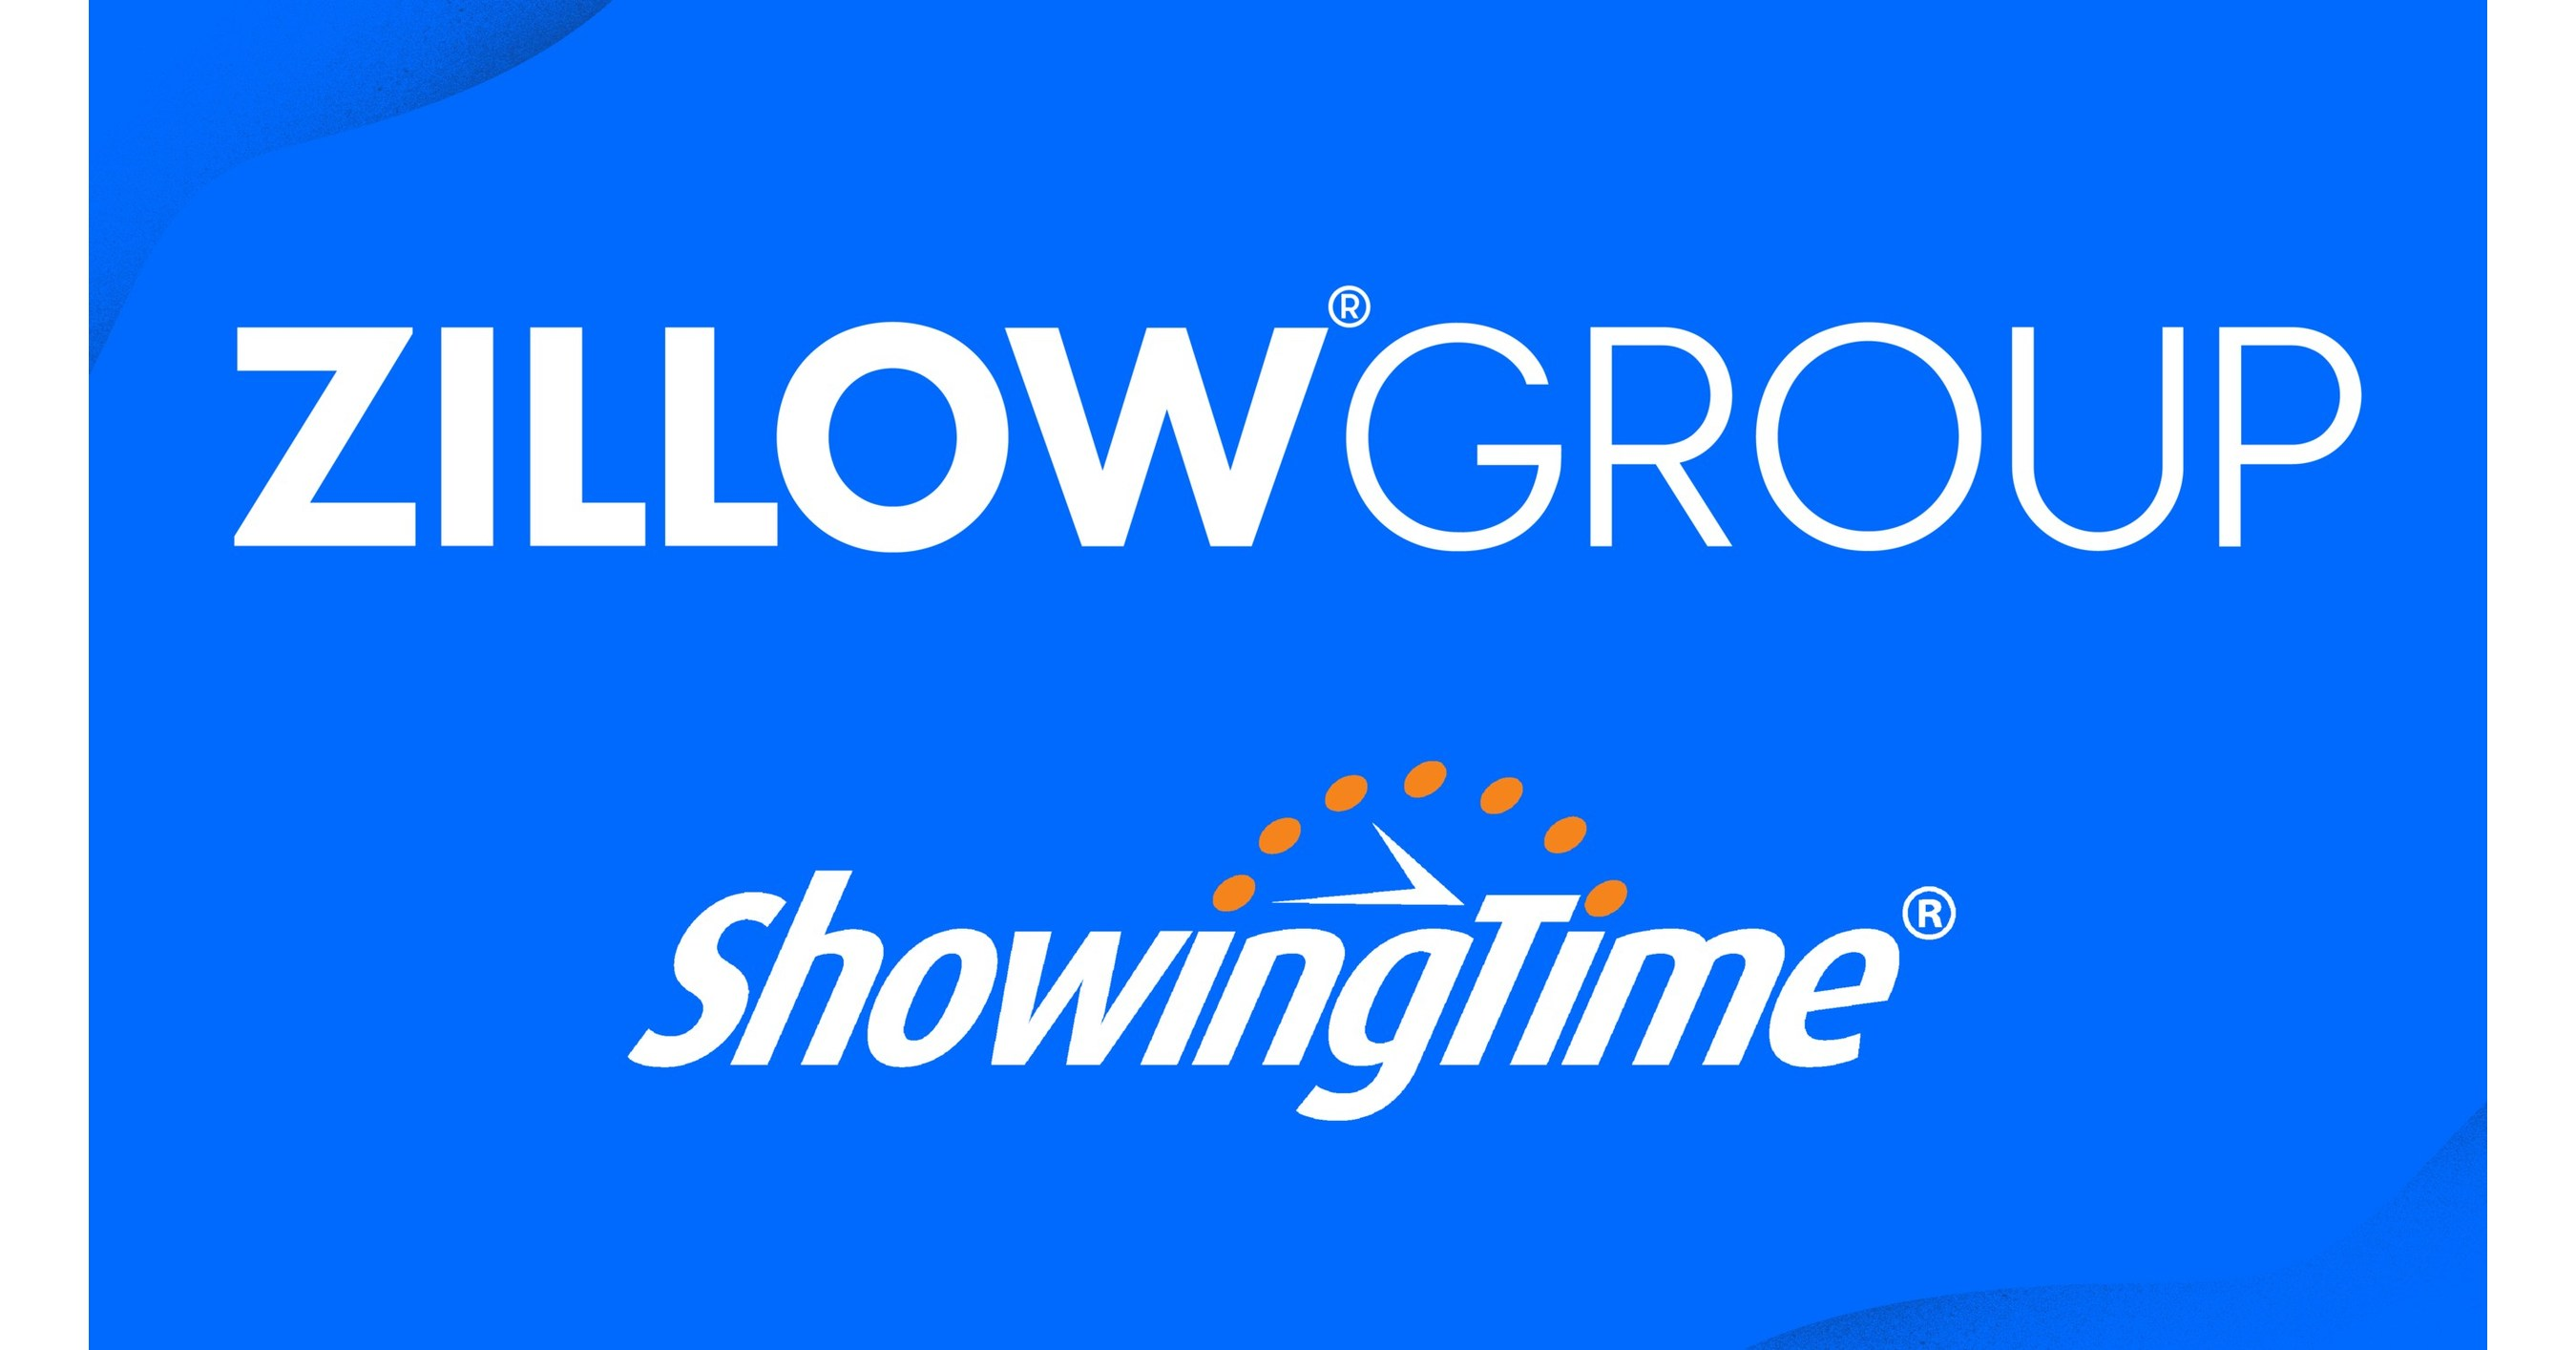 Zillow Group to Acquire ShowingTime, the Industry Leader in Home Touring Technology